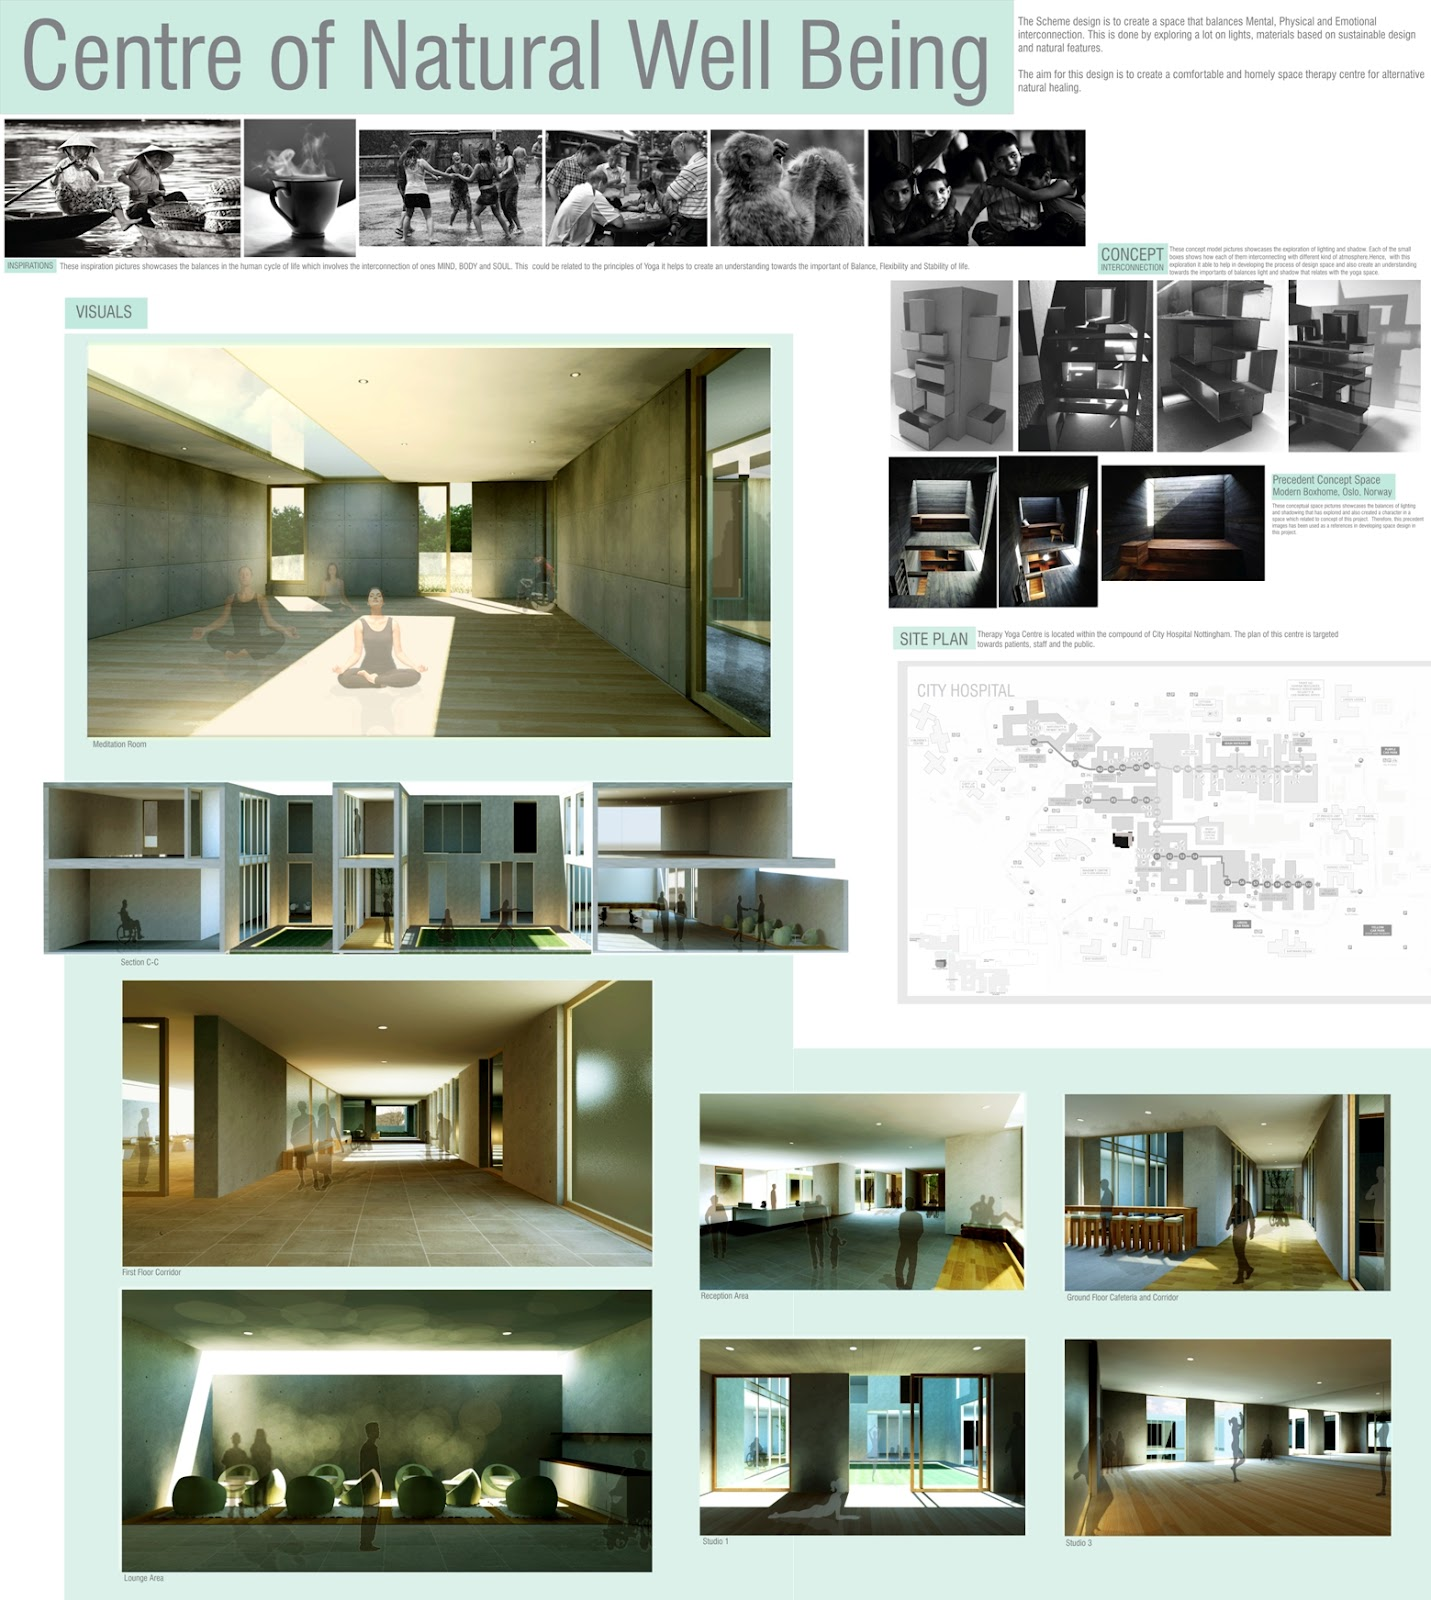 InteriorArchitectureDESIGN Final Year Project